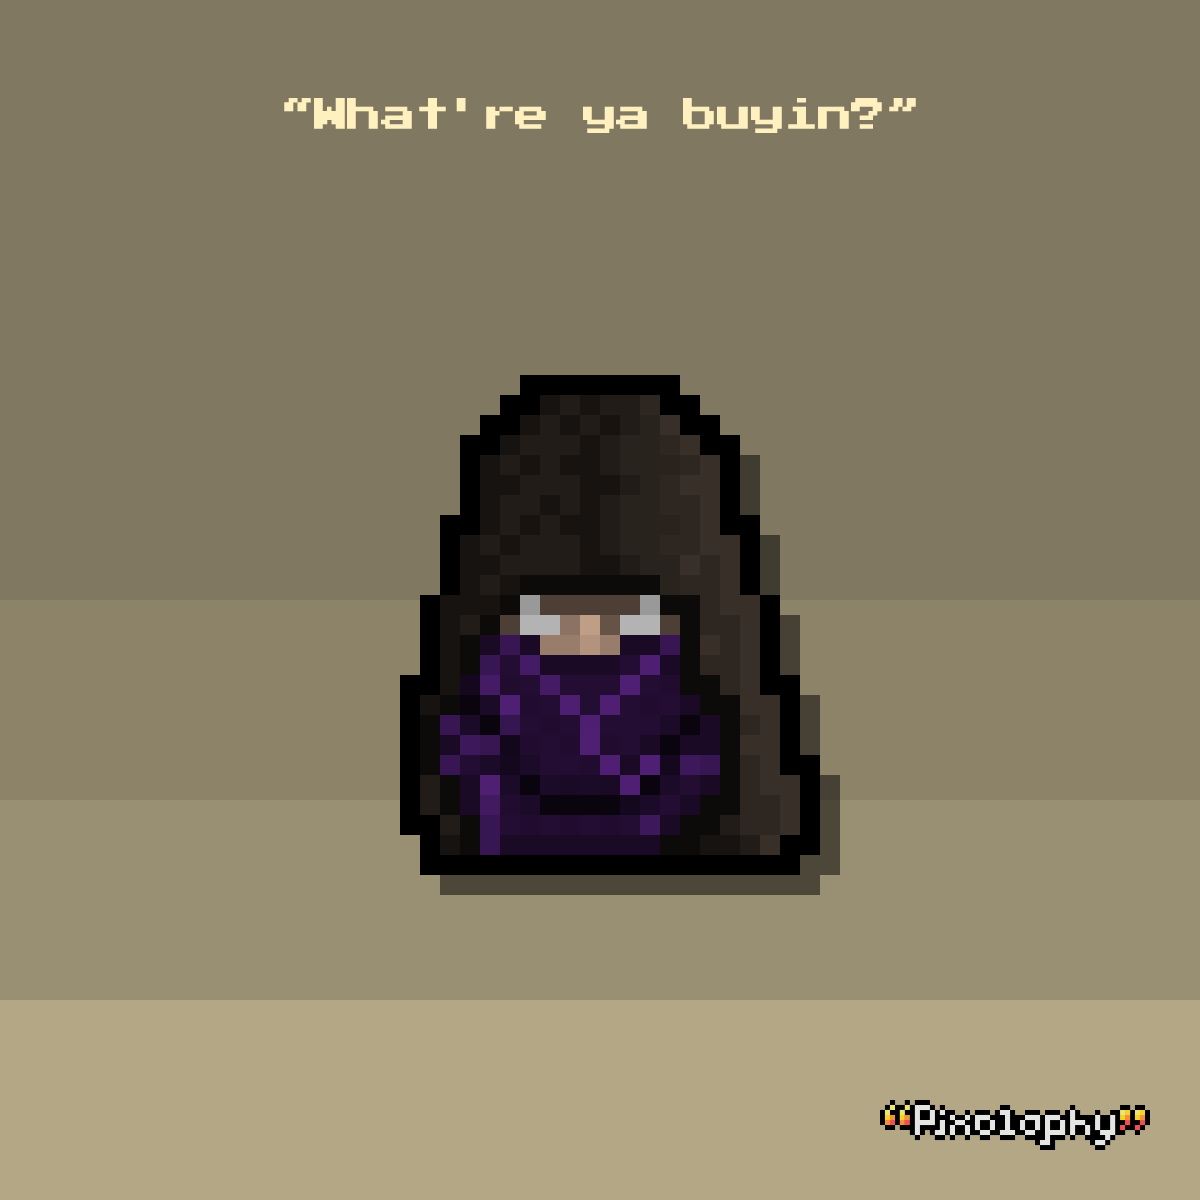 Pixolophy On Twitter From The Videogame Resident Evil 4 Merchant